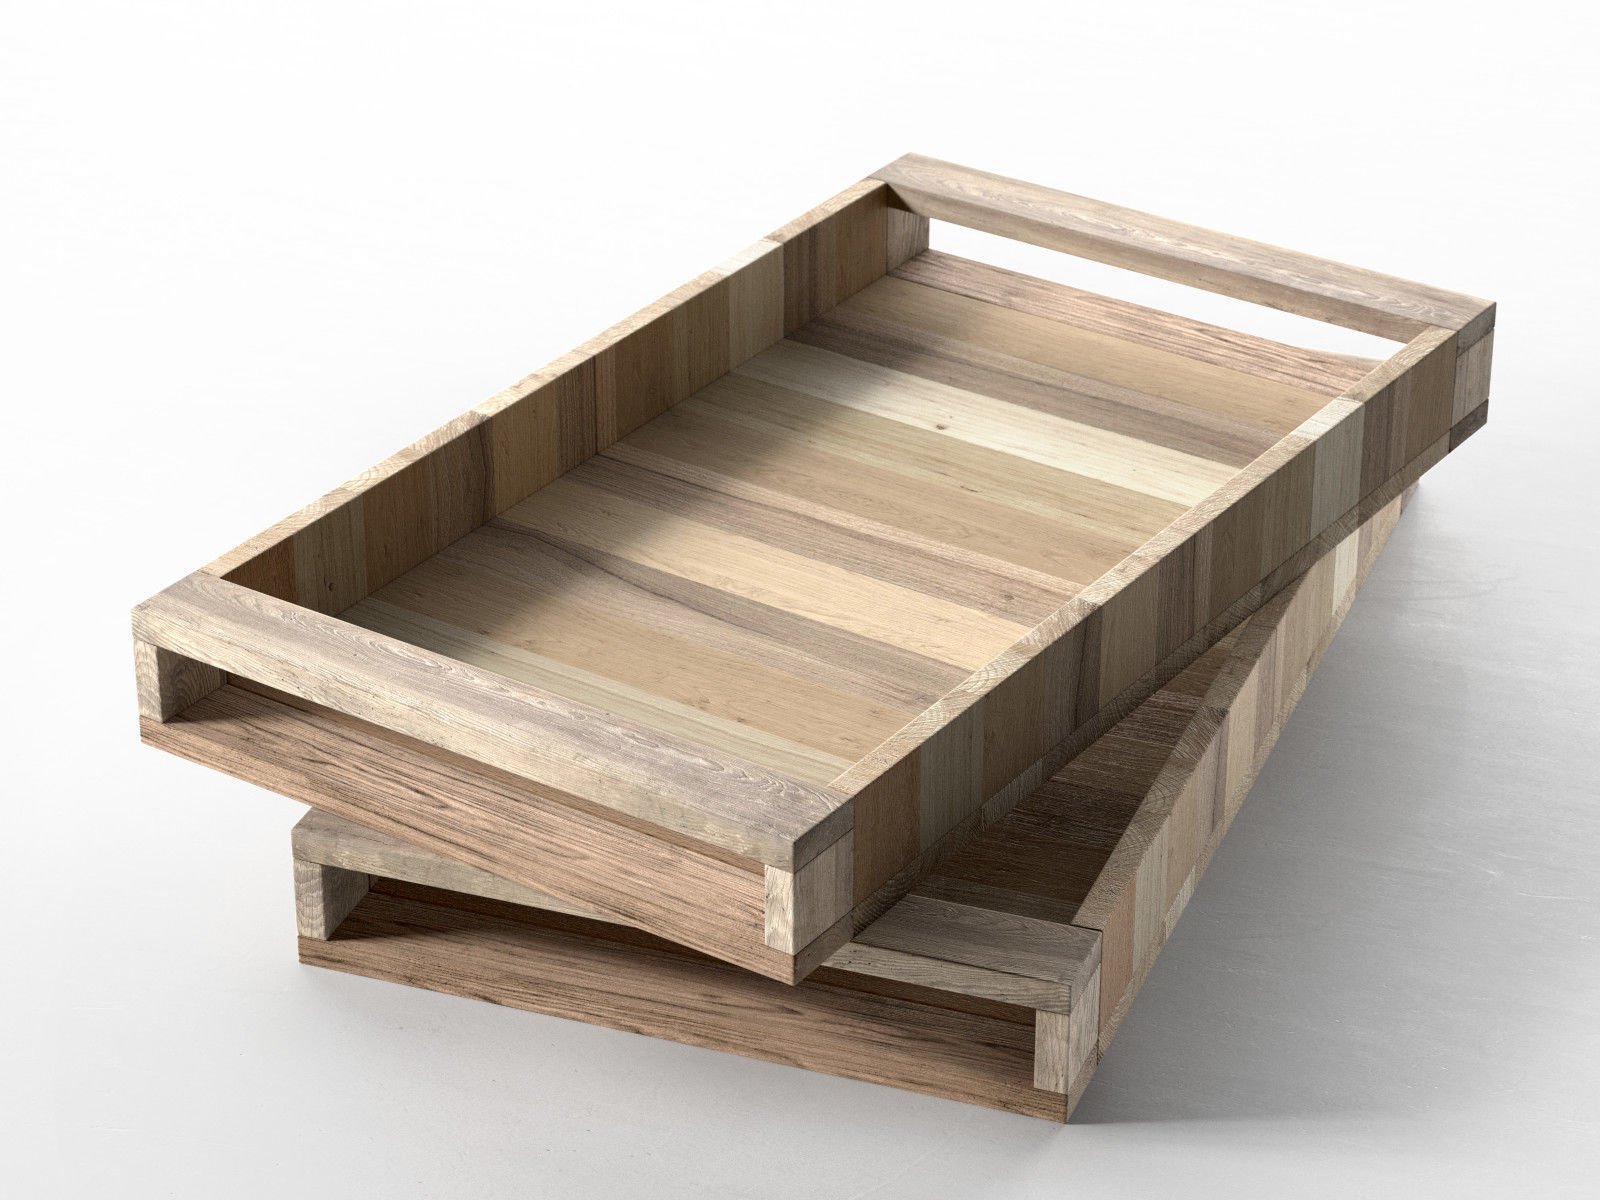 Wooden Crates - Secondary Packaging